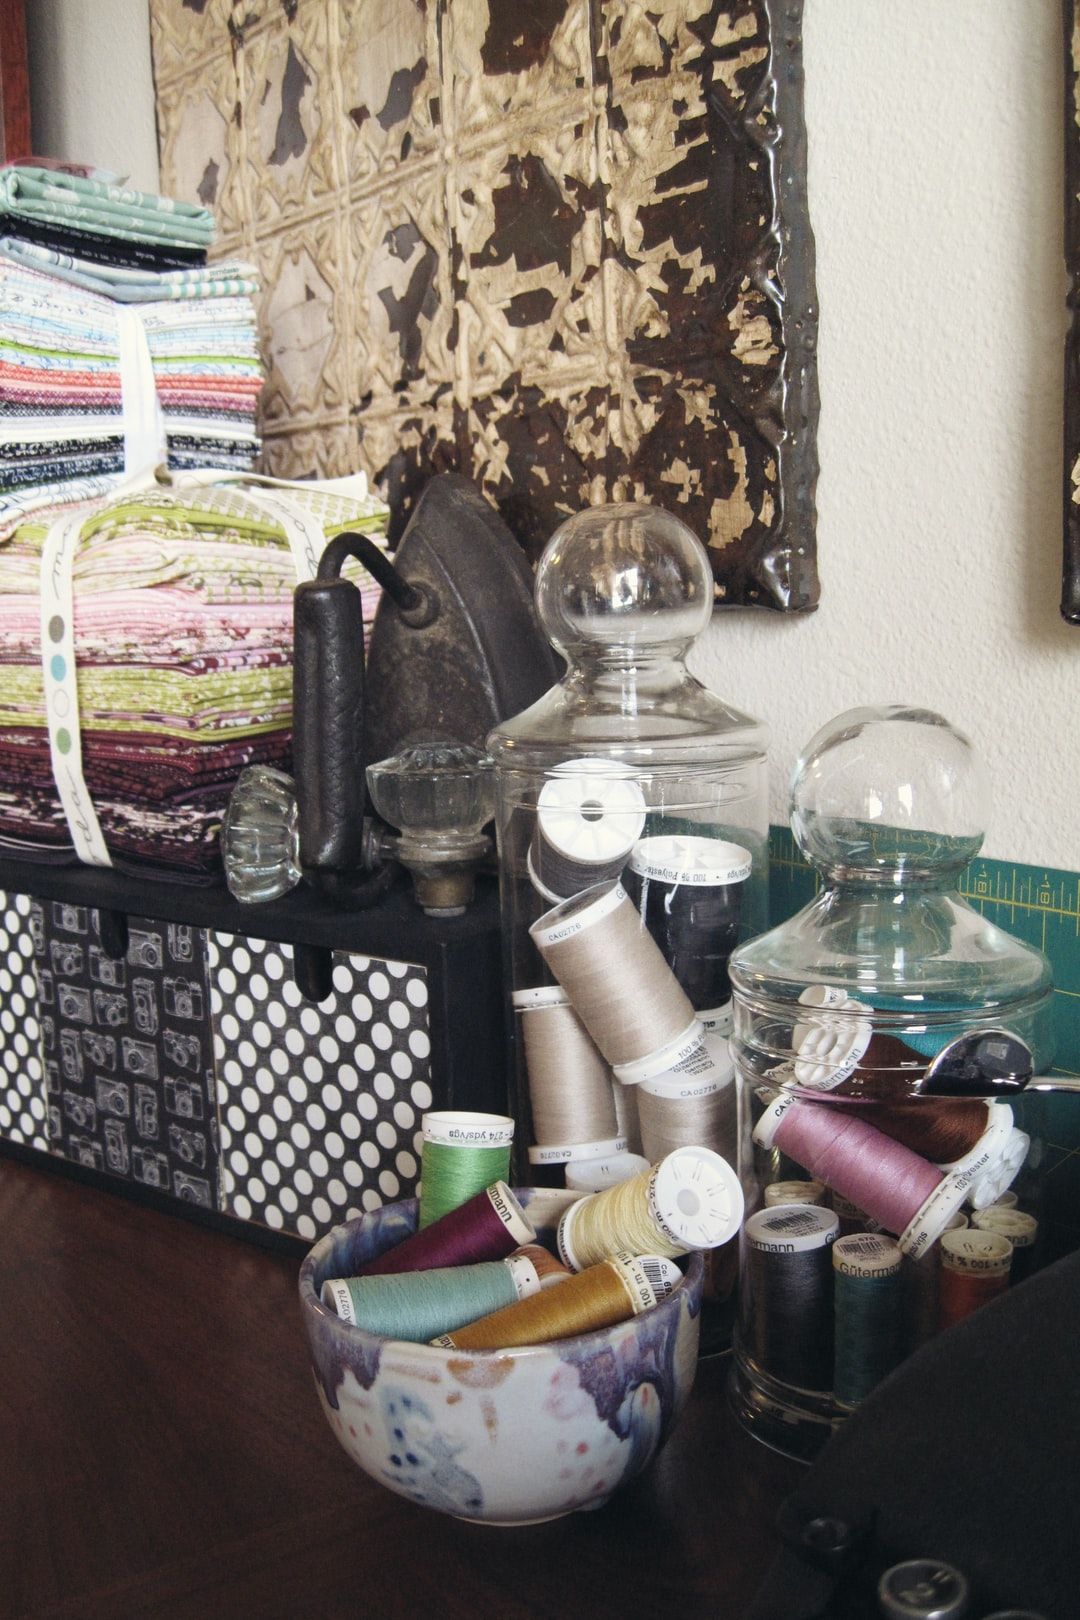 Collection of craft and sewing related supplies, stored on a buffet in clear glass jars and vintage pottery bowls along with stacks of cotton fabric.